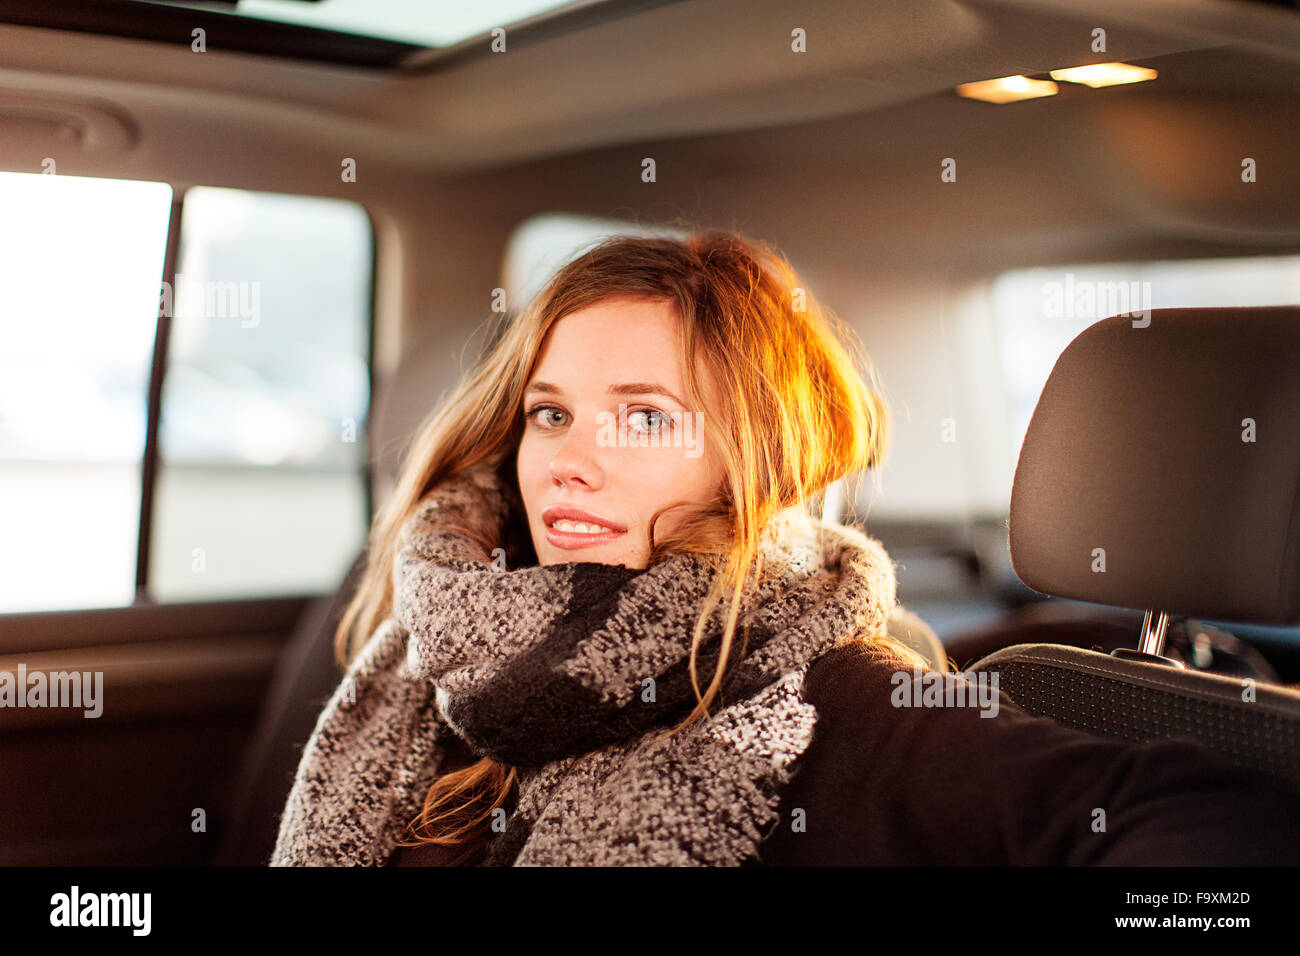 Portrait of smiling woman in a car Photo Stock